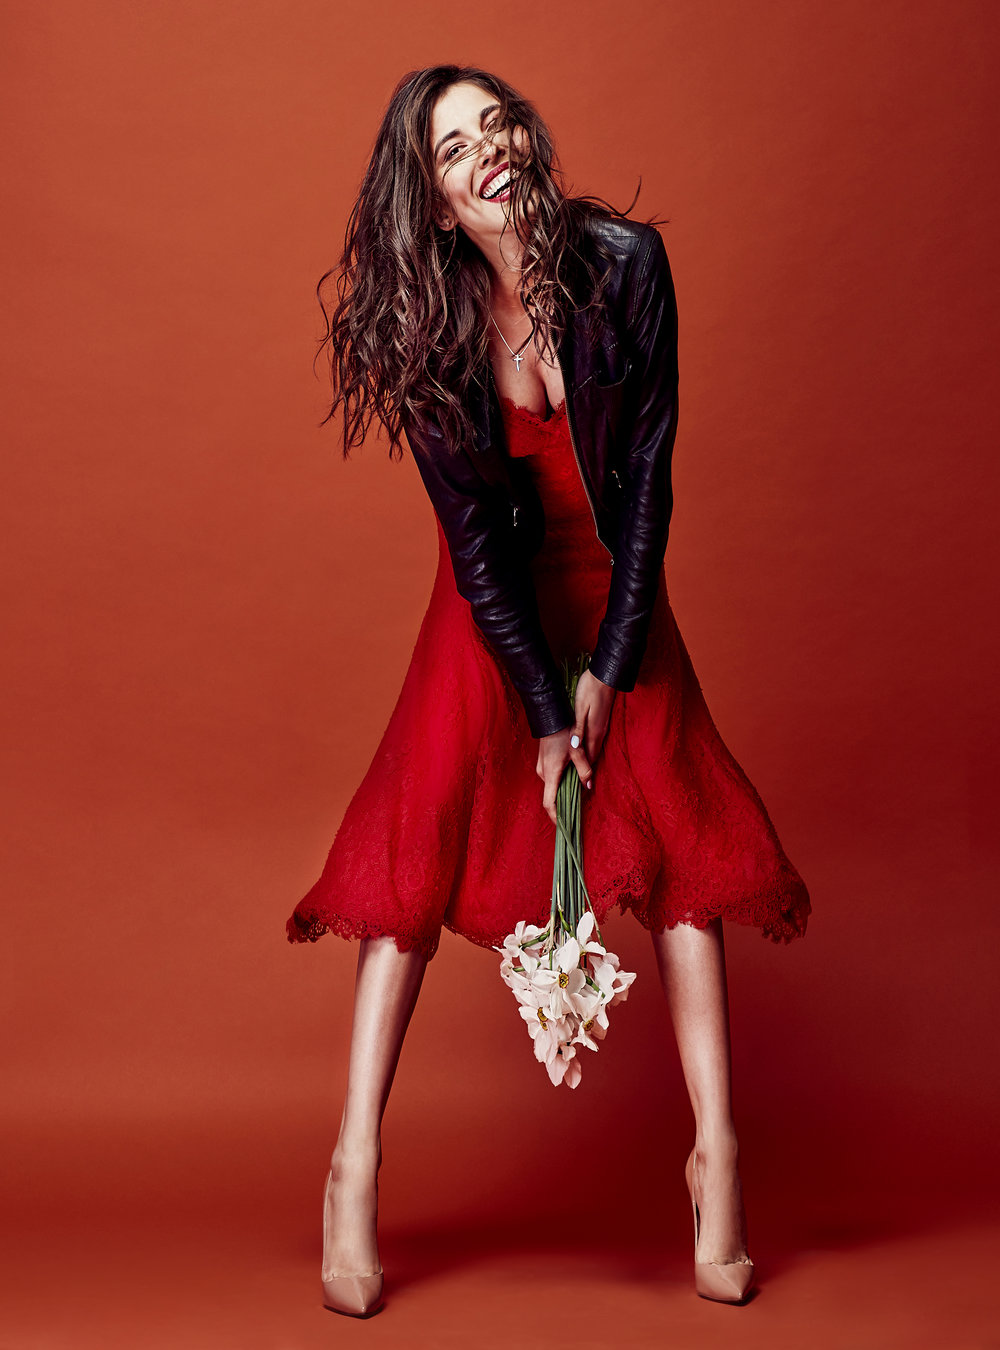 Beautiful smiling brunette woman dressed in red lace dress, black leather jacket and nude heels posing with bunch of daffodils in studio with orange background